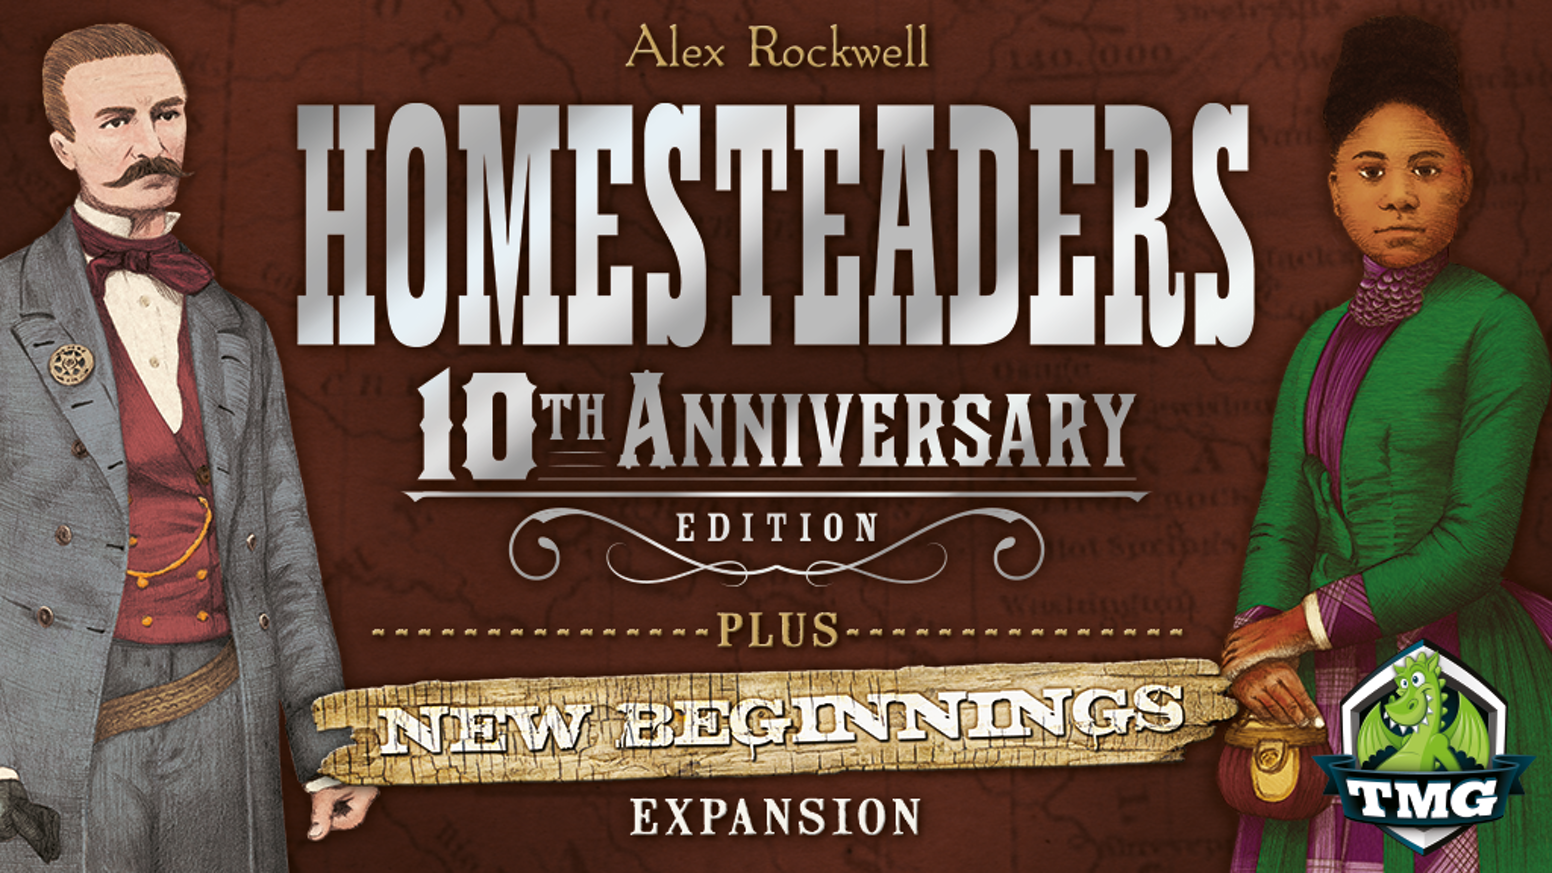 Homesteaders 10th Anniversary Edition + New Beginnings